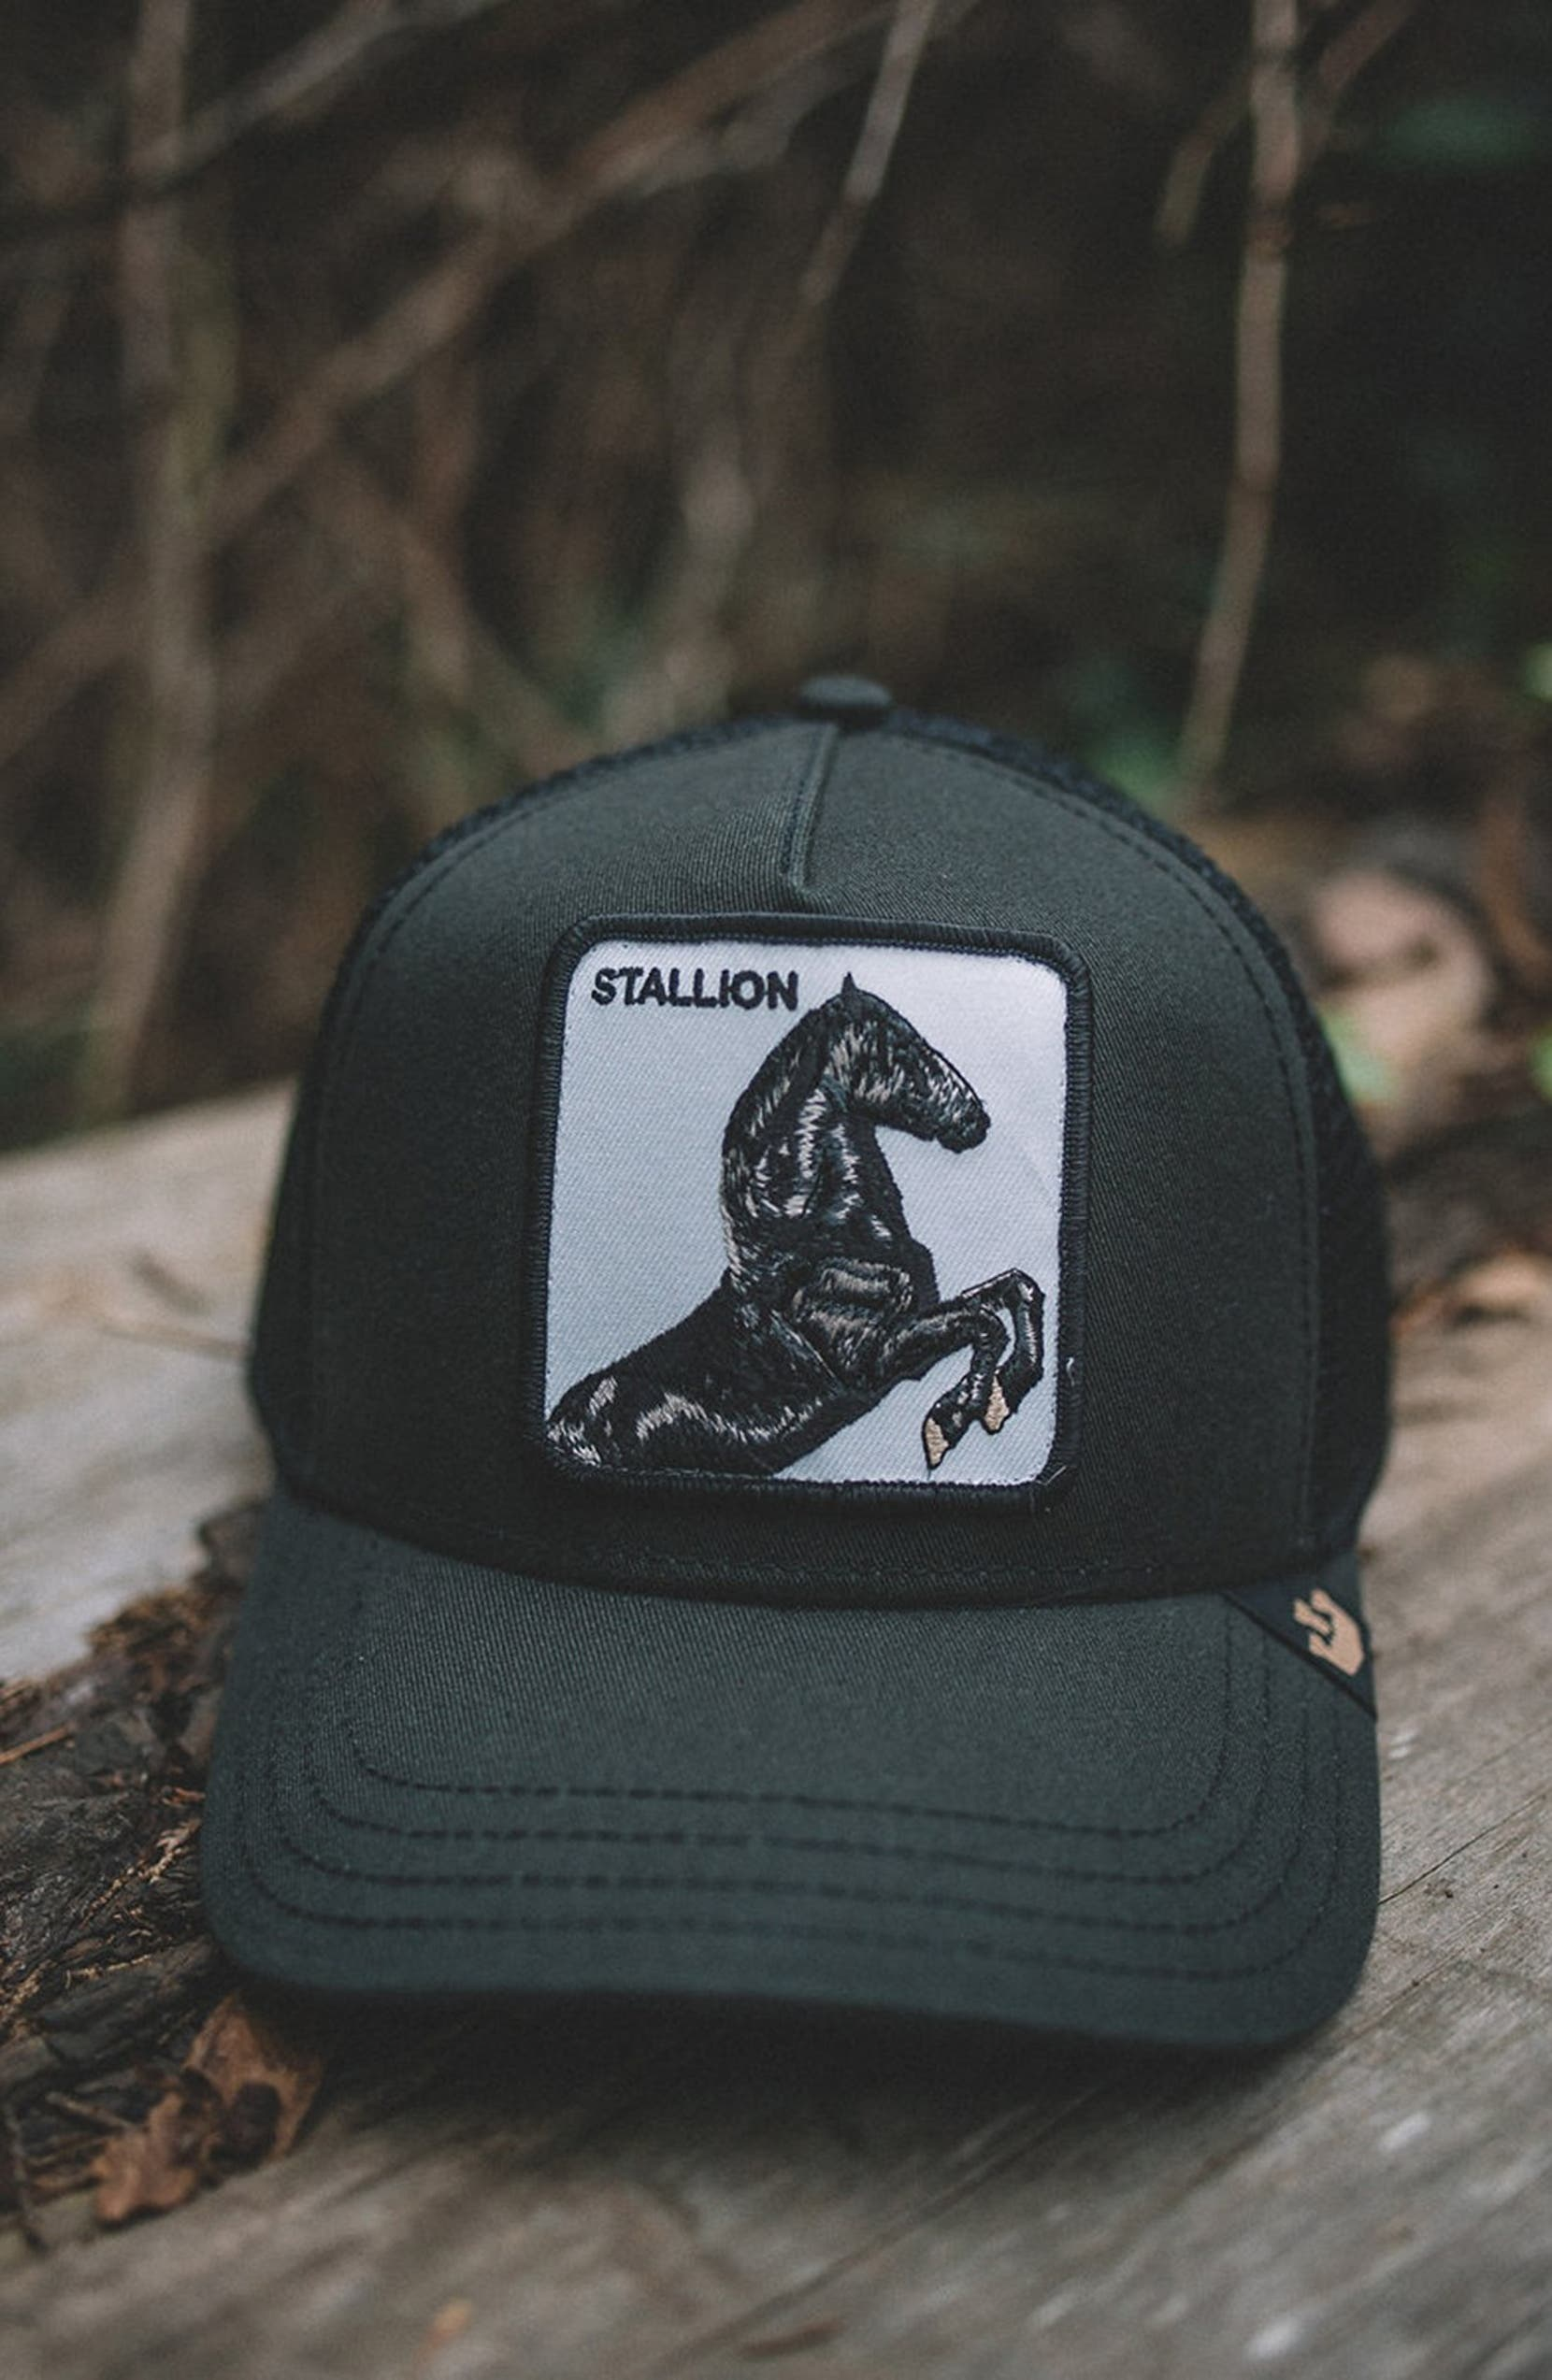 Goorin Brothers  Stallion  Trucker Hat  17b13904b2e